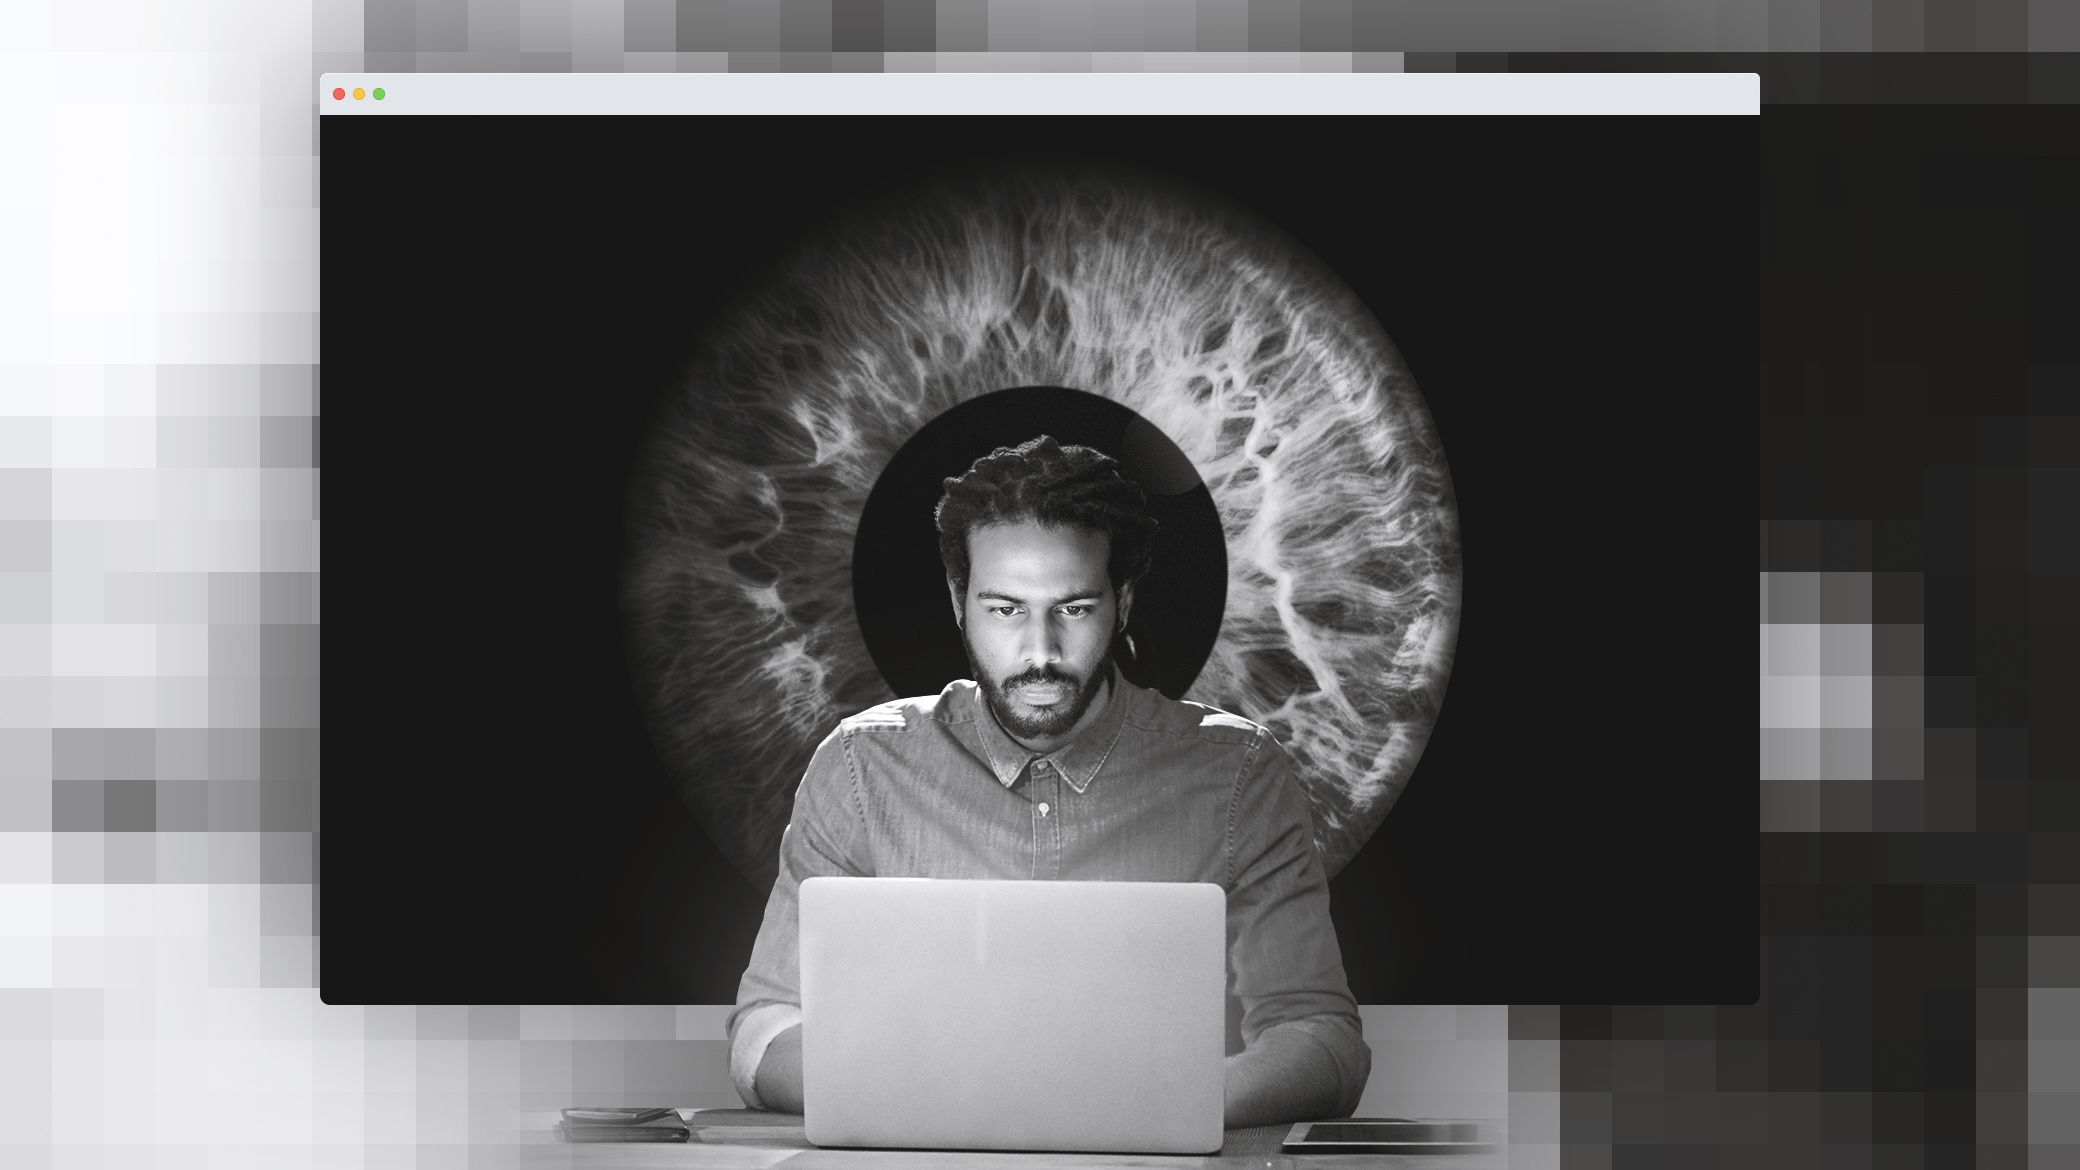 A man looks at a laptop while a giant eye behind him stares.